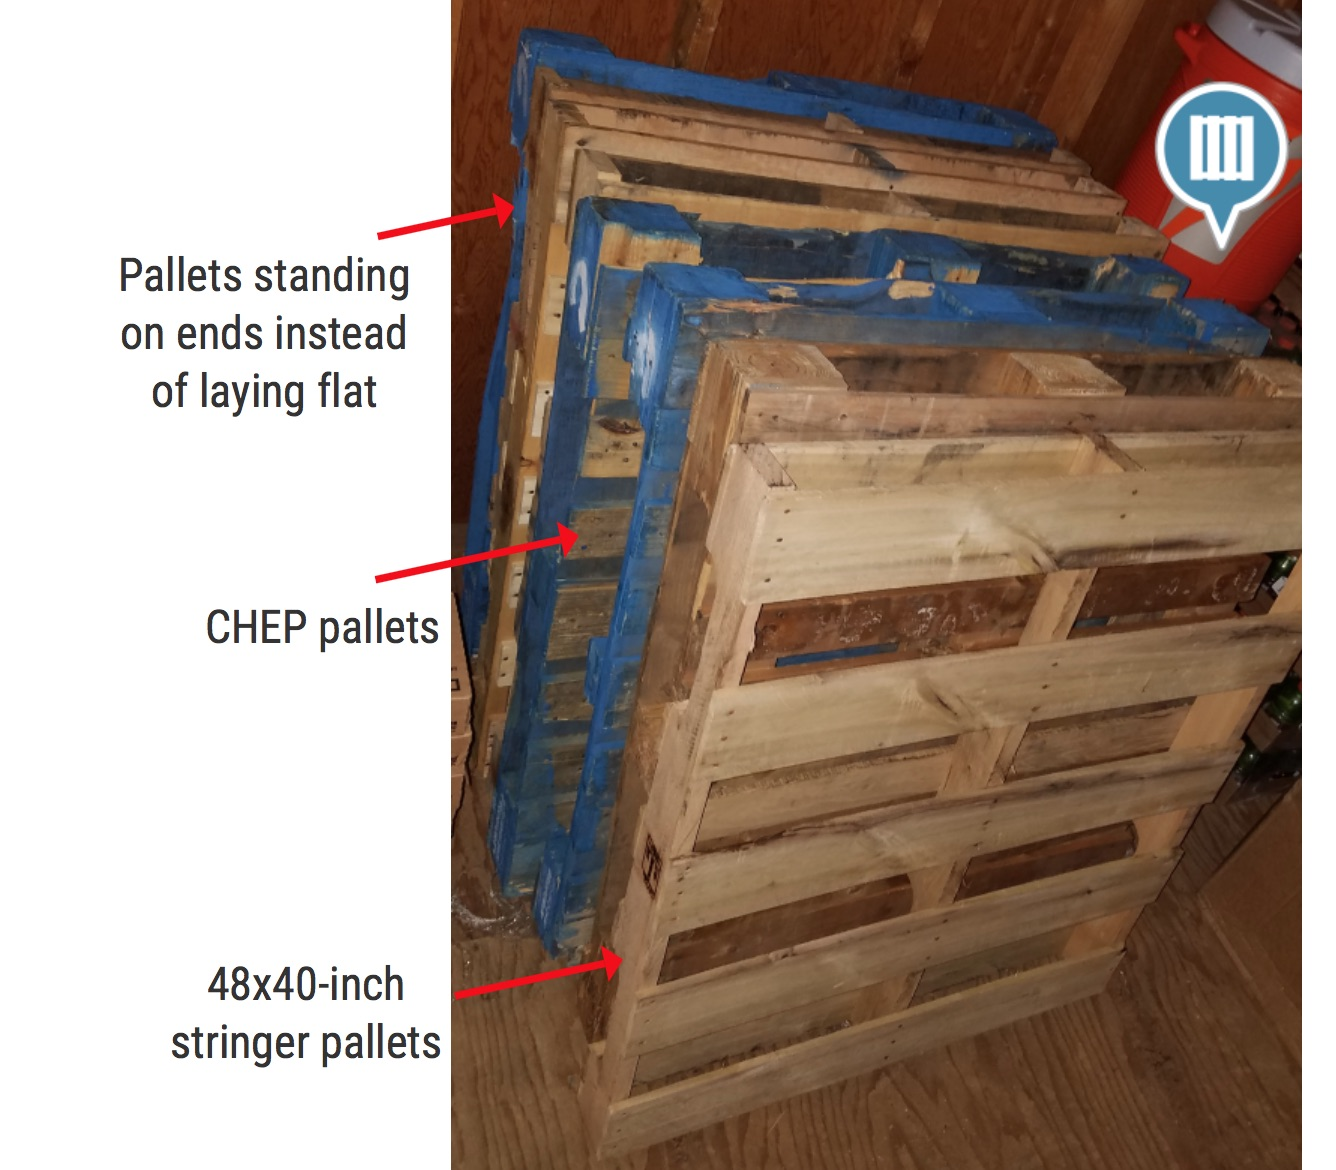 26 Pictures Analyzing Pallet Management at Businesses